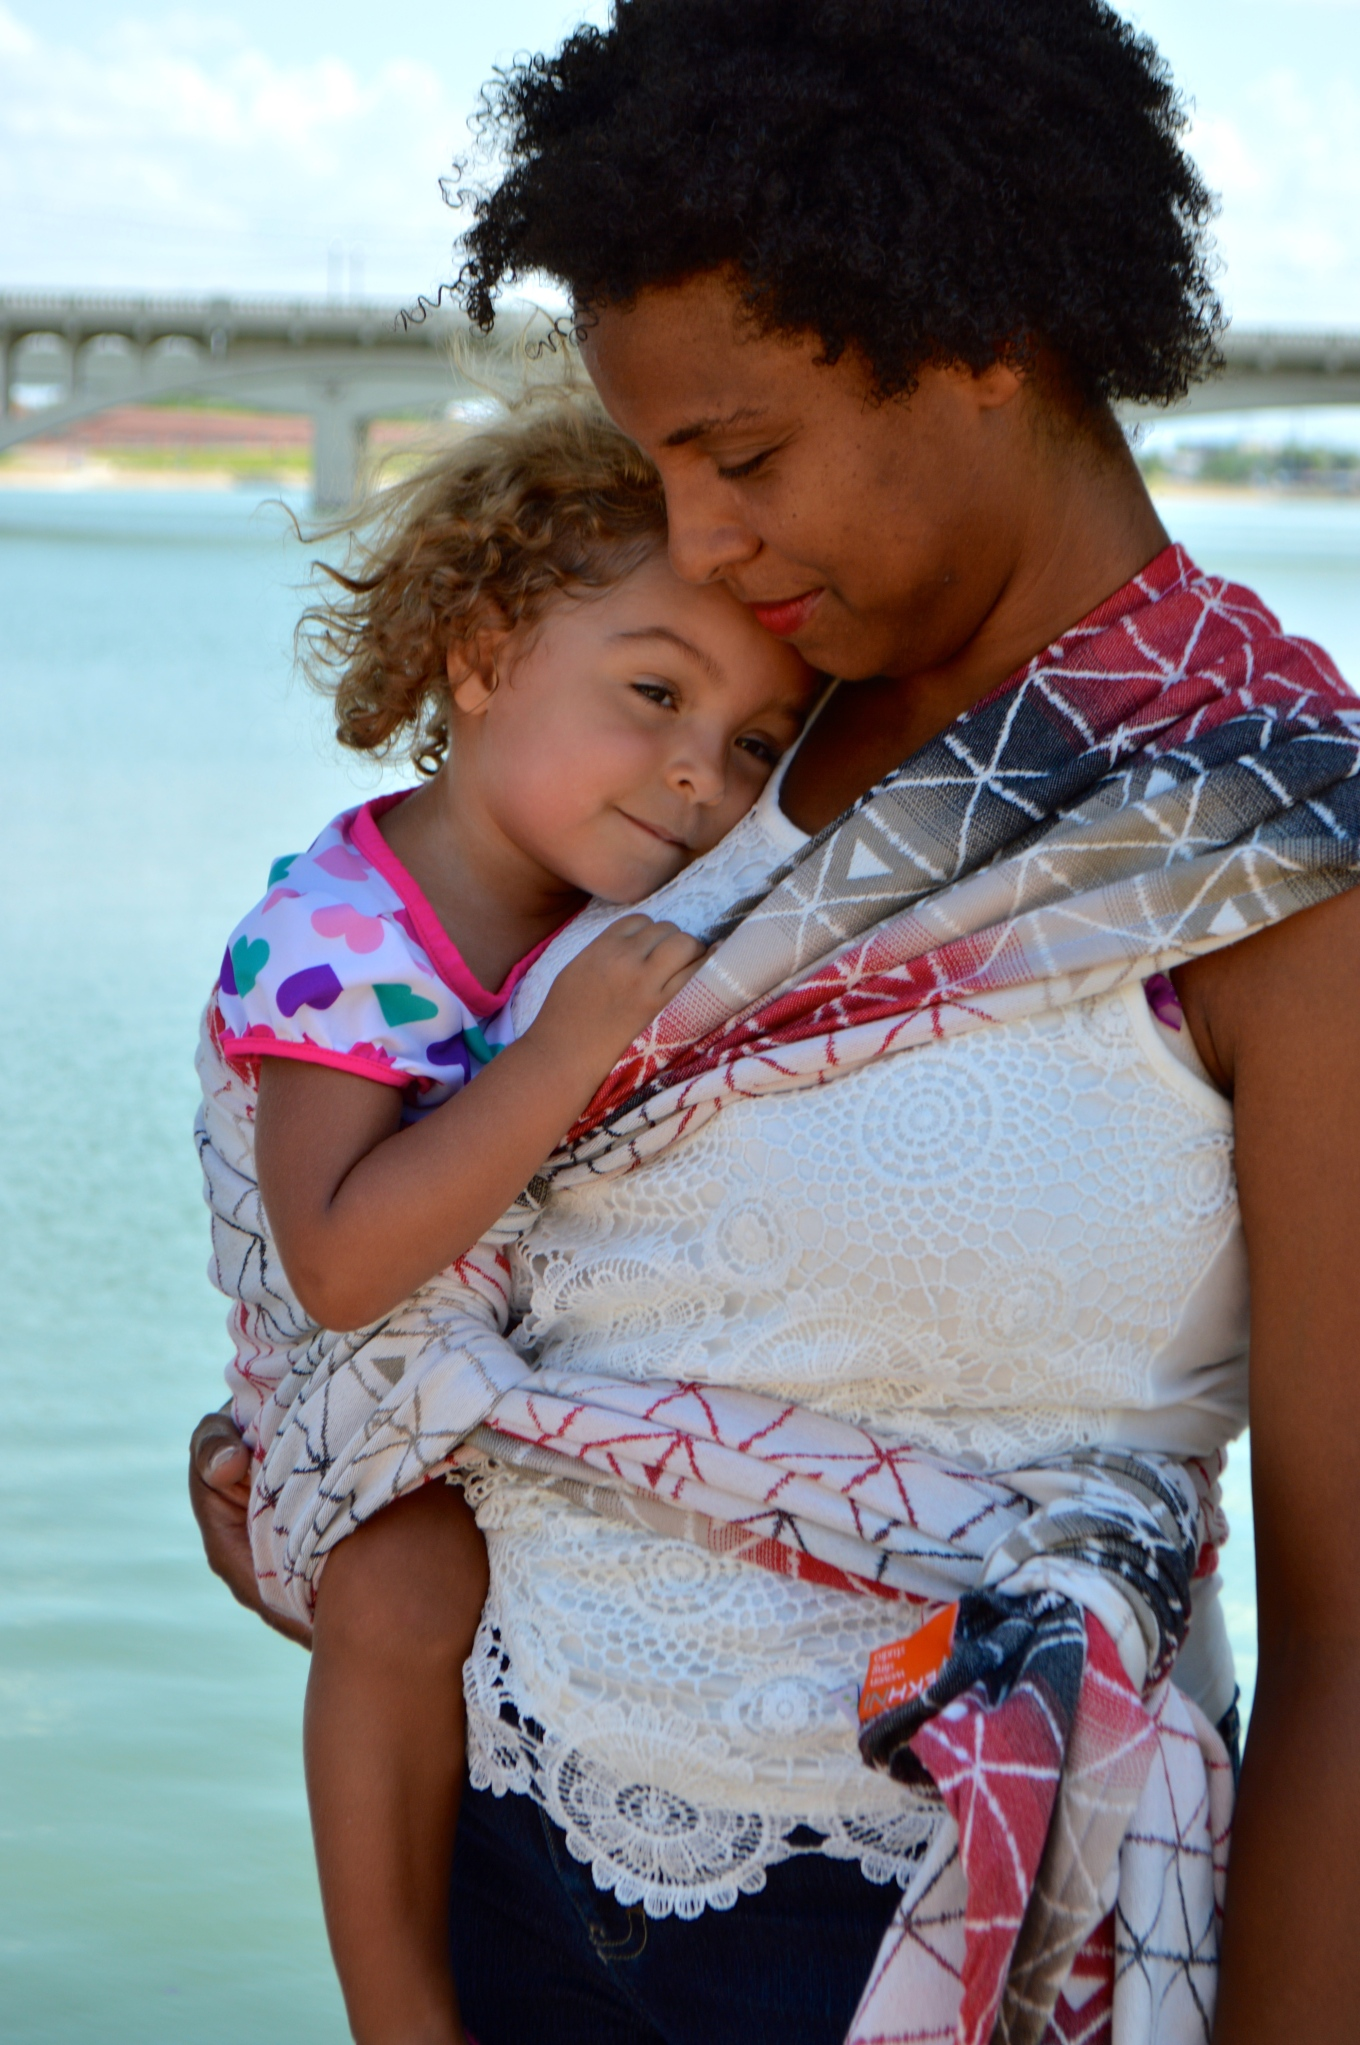 Natural curly haired African-American Momma n white lace blouse shares a snuggle with her curly haired blond toddler of light brown skin. Baby wears a swim shirt with pink, purple, and teal hearts against a white background. The lake and a bridge are in the background.